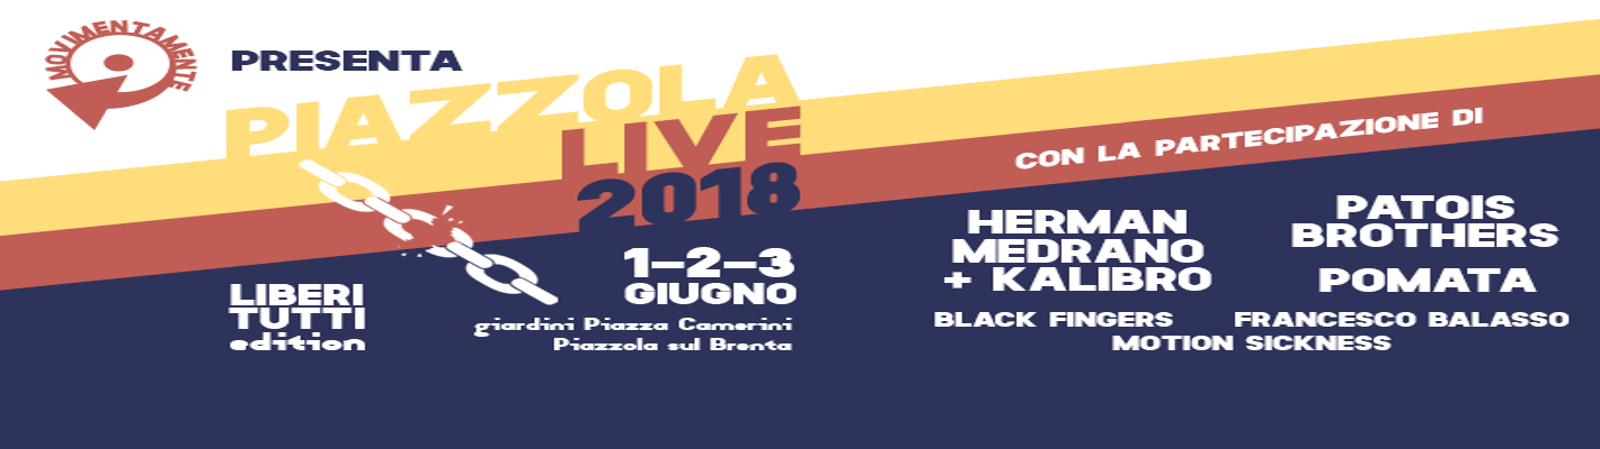 Piazzola Live 2018